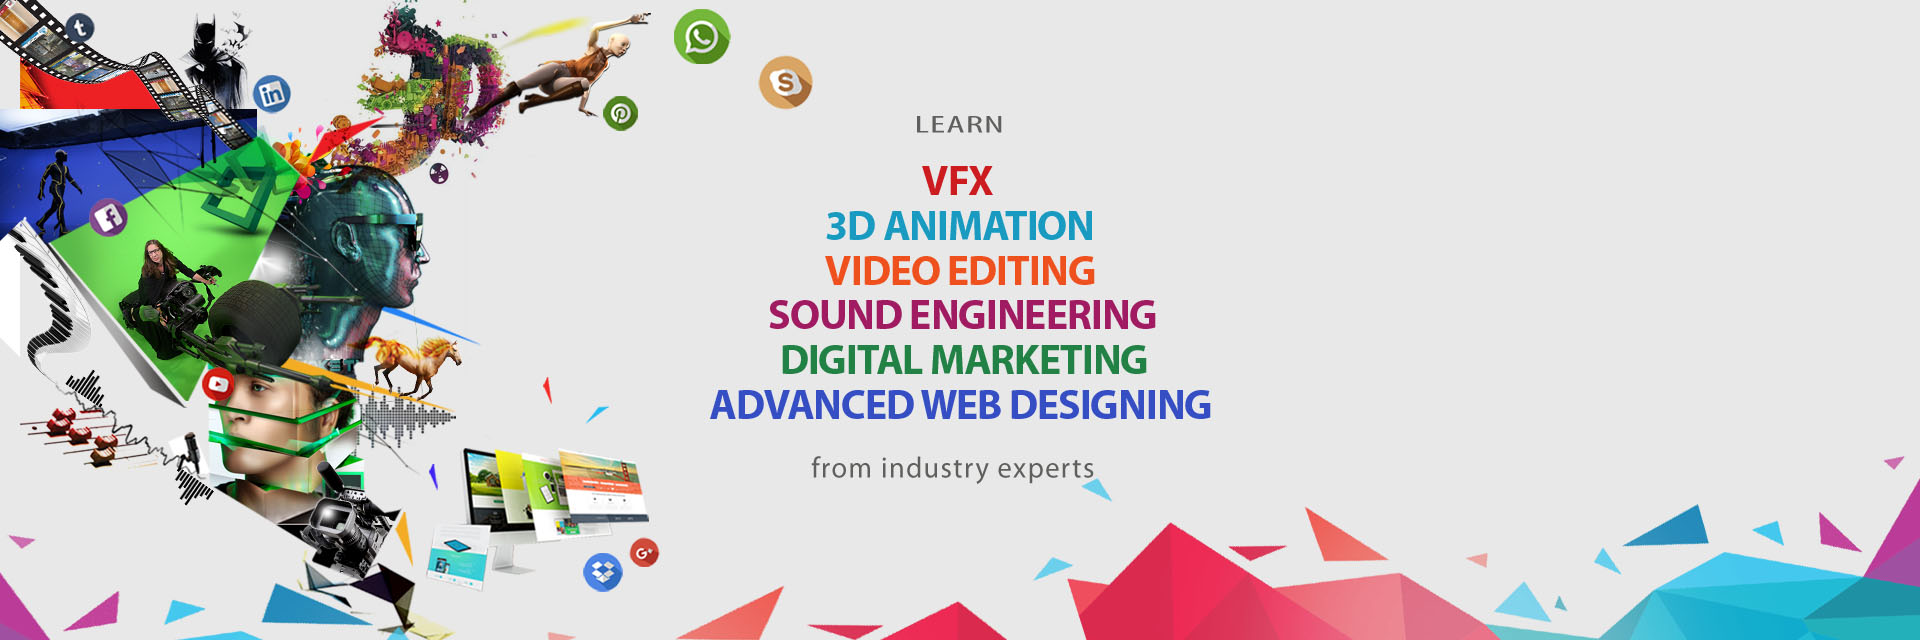 Learn VFX, 3d animation, Digital marketing, Video Editing, Sound Editing and Advance Web Designing courses in kolkata